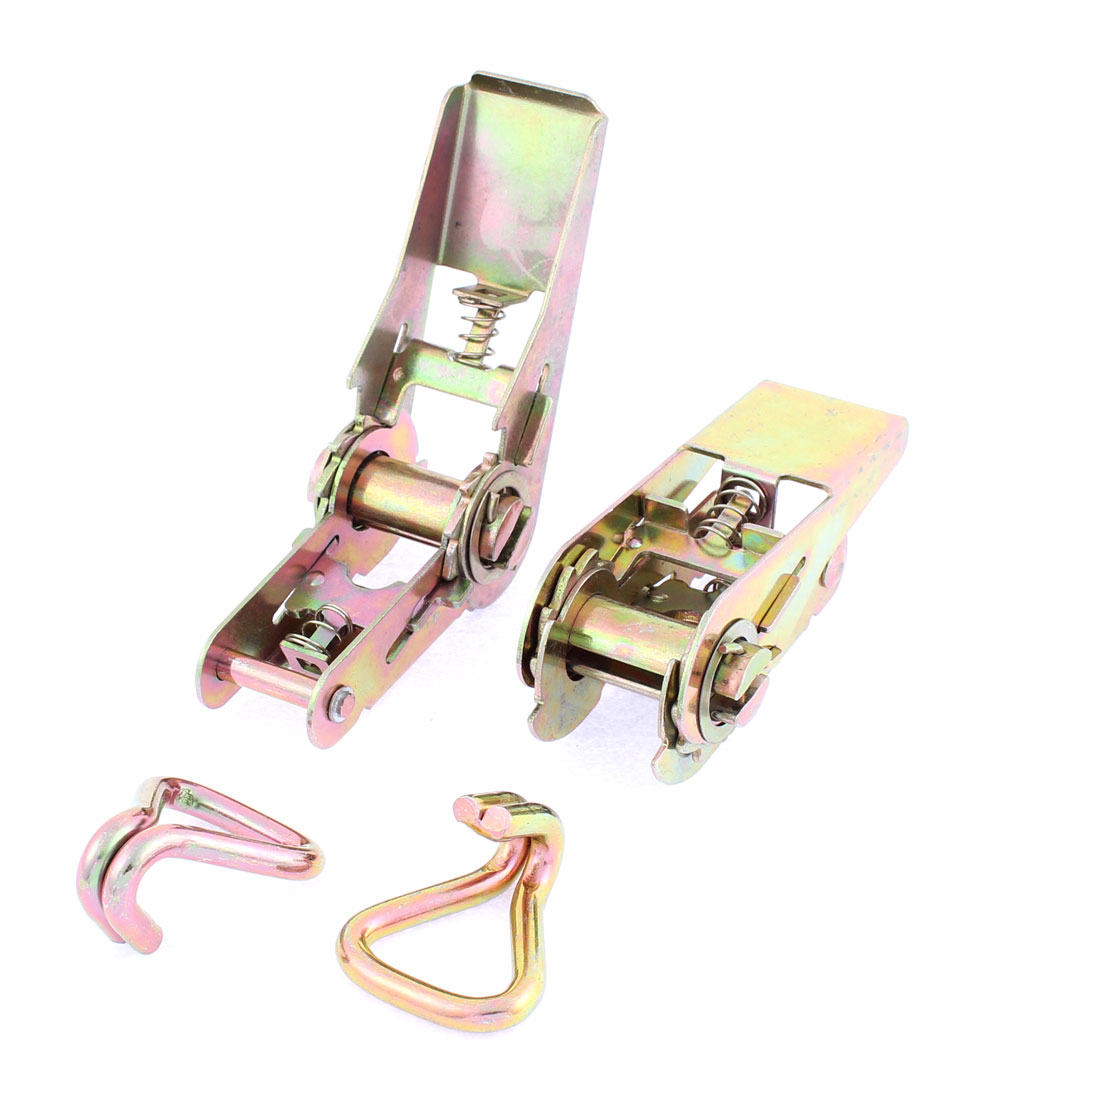 Metal Self-Securing Ratchet Strap Tensioner Tie Down w Claw Hook Bronze Tone 2 Pcs